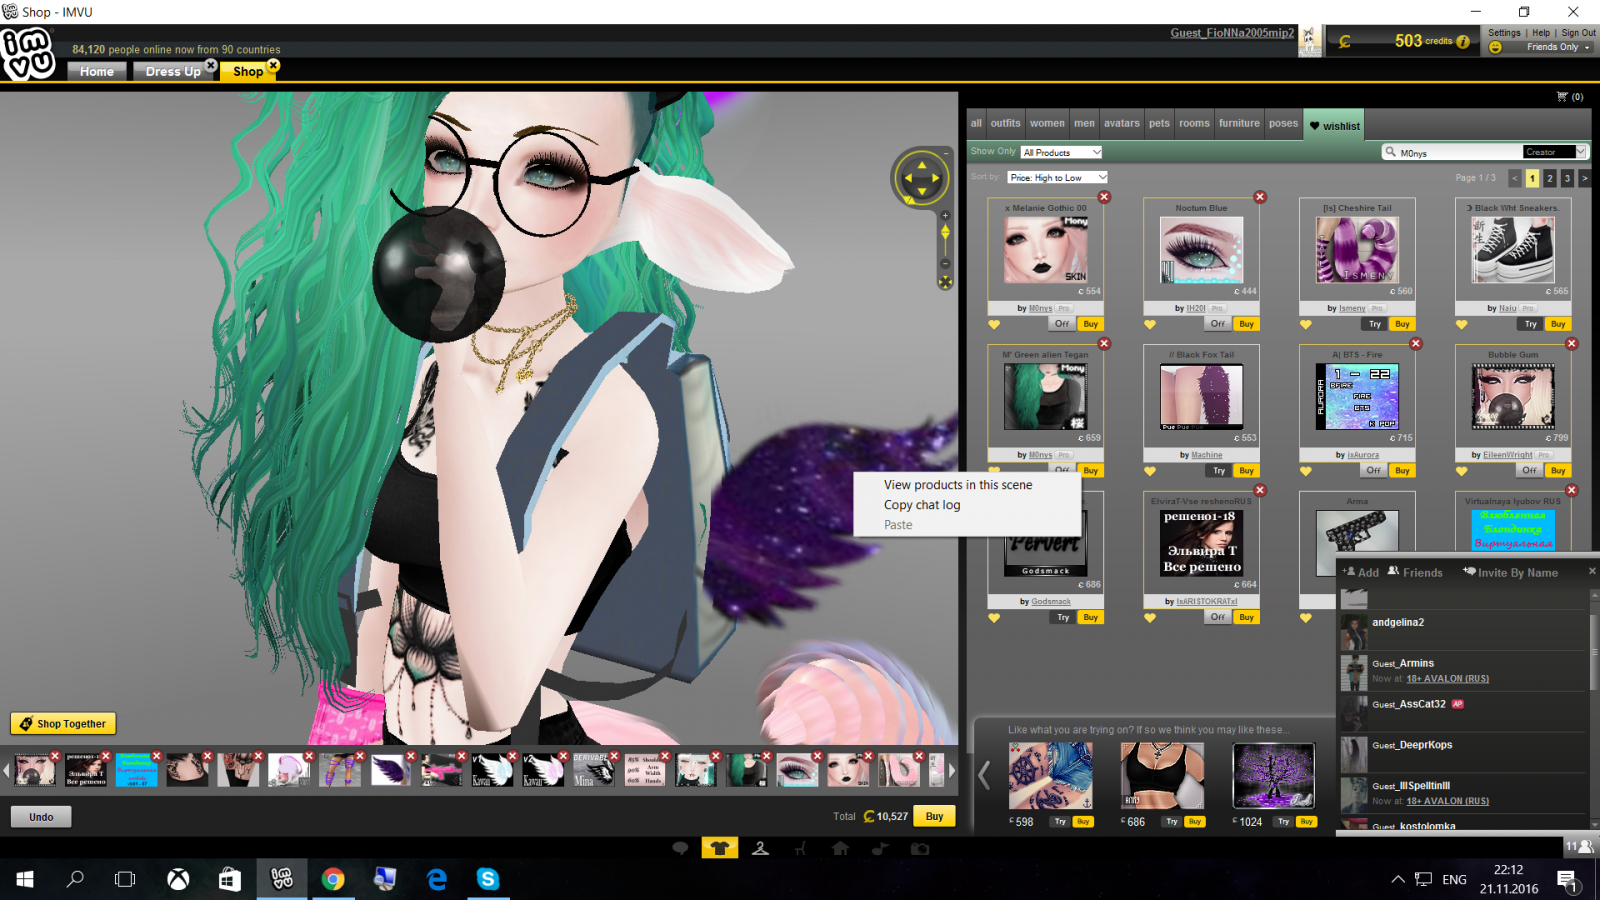 How to take pictures in imvu shop # Cant Get Pregnant Second Time - Folic Acid Help To Get